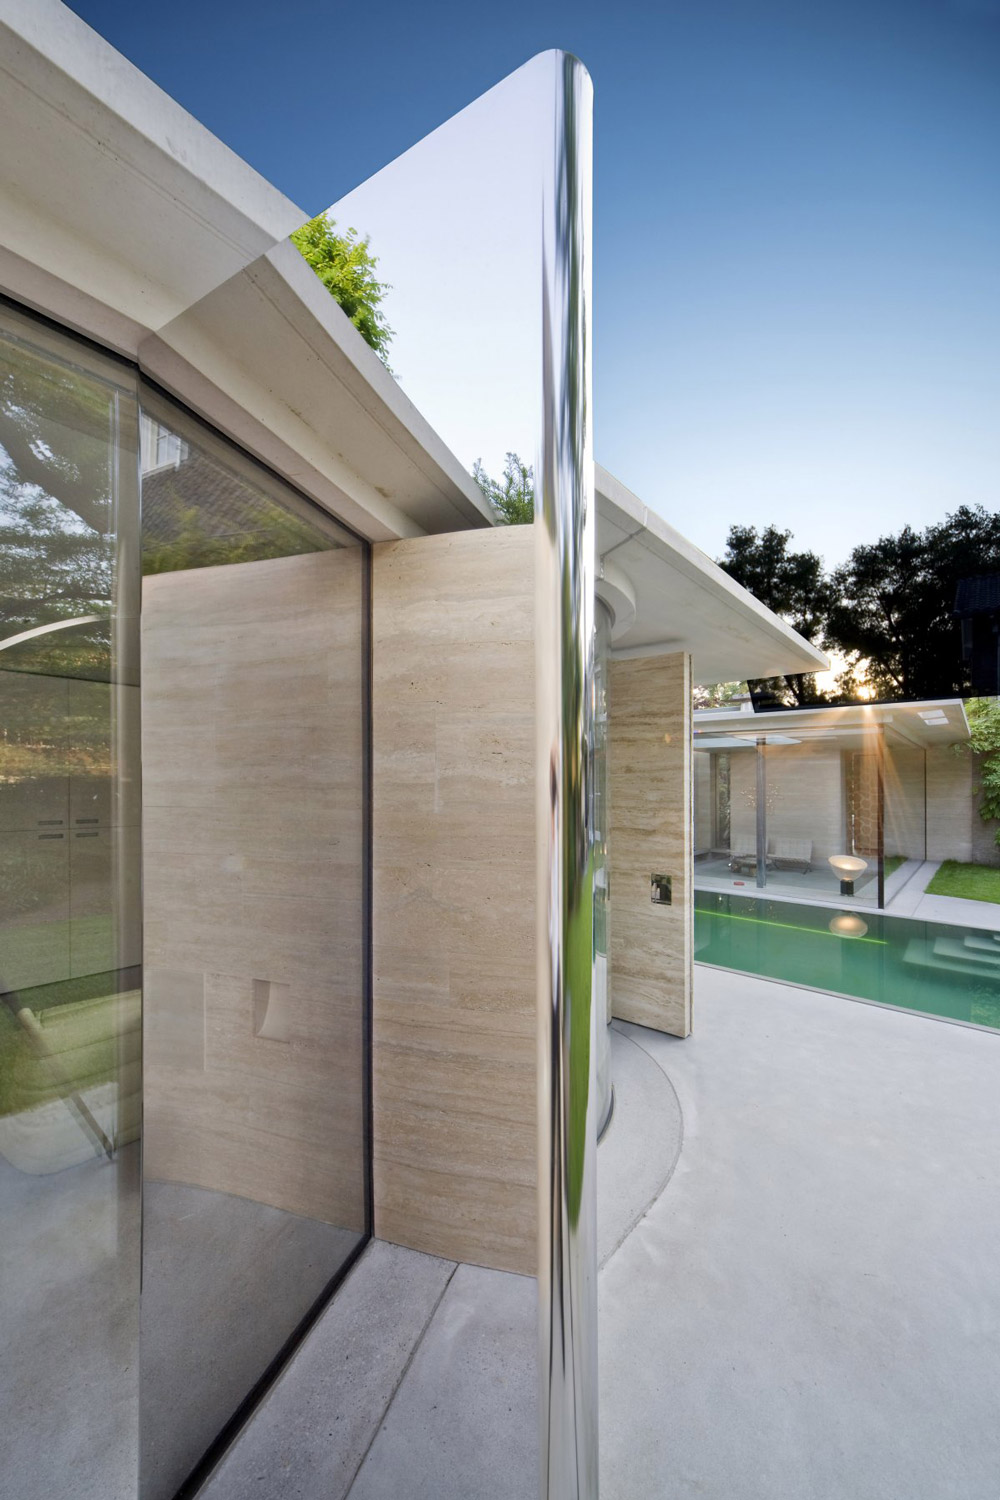 Terrace, Extension and Renovation in Eindhoven, The Netherlands